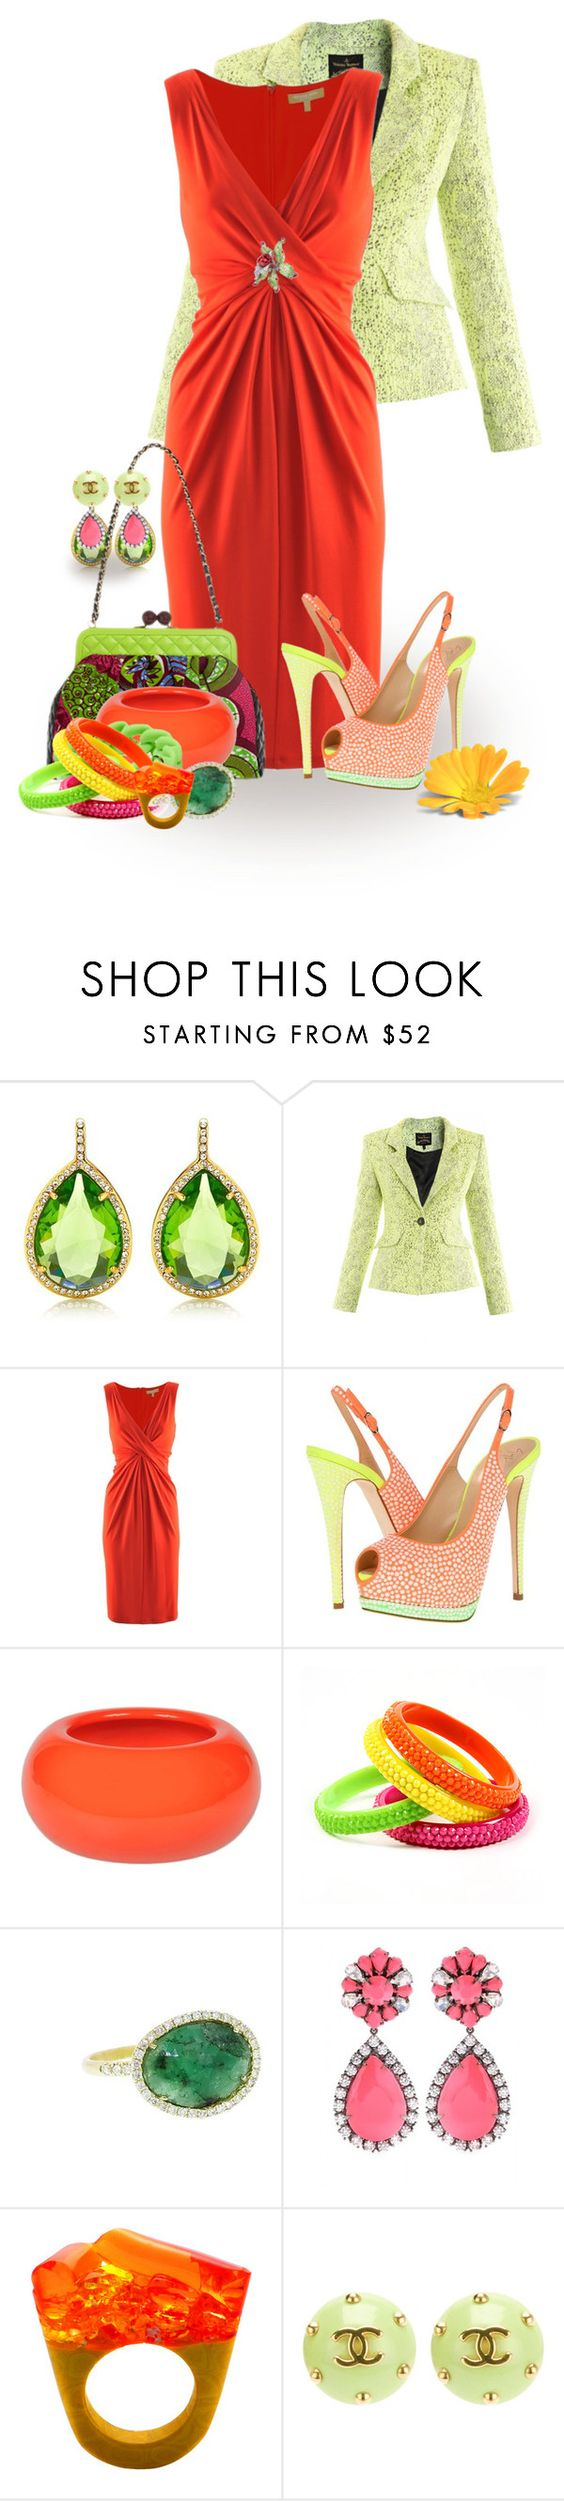 """""""Guiseppe Zanotti Neon Polka Dot Slingbacks"""" by lisa-arnold-holden ❤ liked on Polyvore featuring Juicy Couture, Vivienne Westwood Anglomania, Michael Kors, Moschino, Giuseppe Zanotti, Sonia Rykiel, Marc by Marc Jacobs, Amrita Singh, Meira T and Pasionae"""